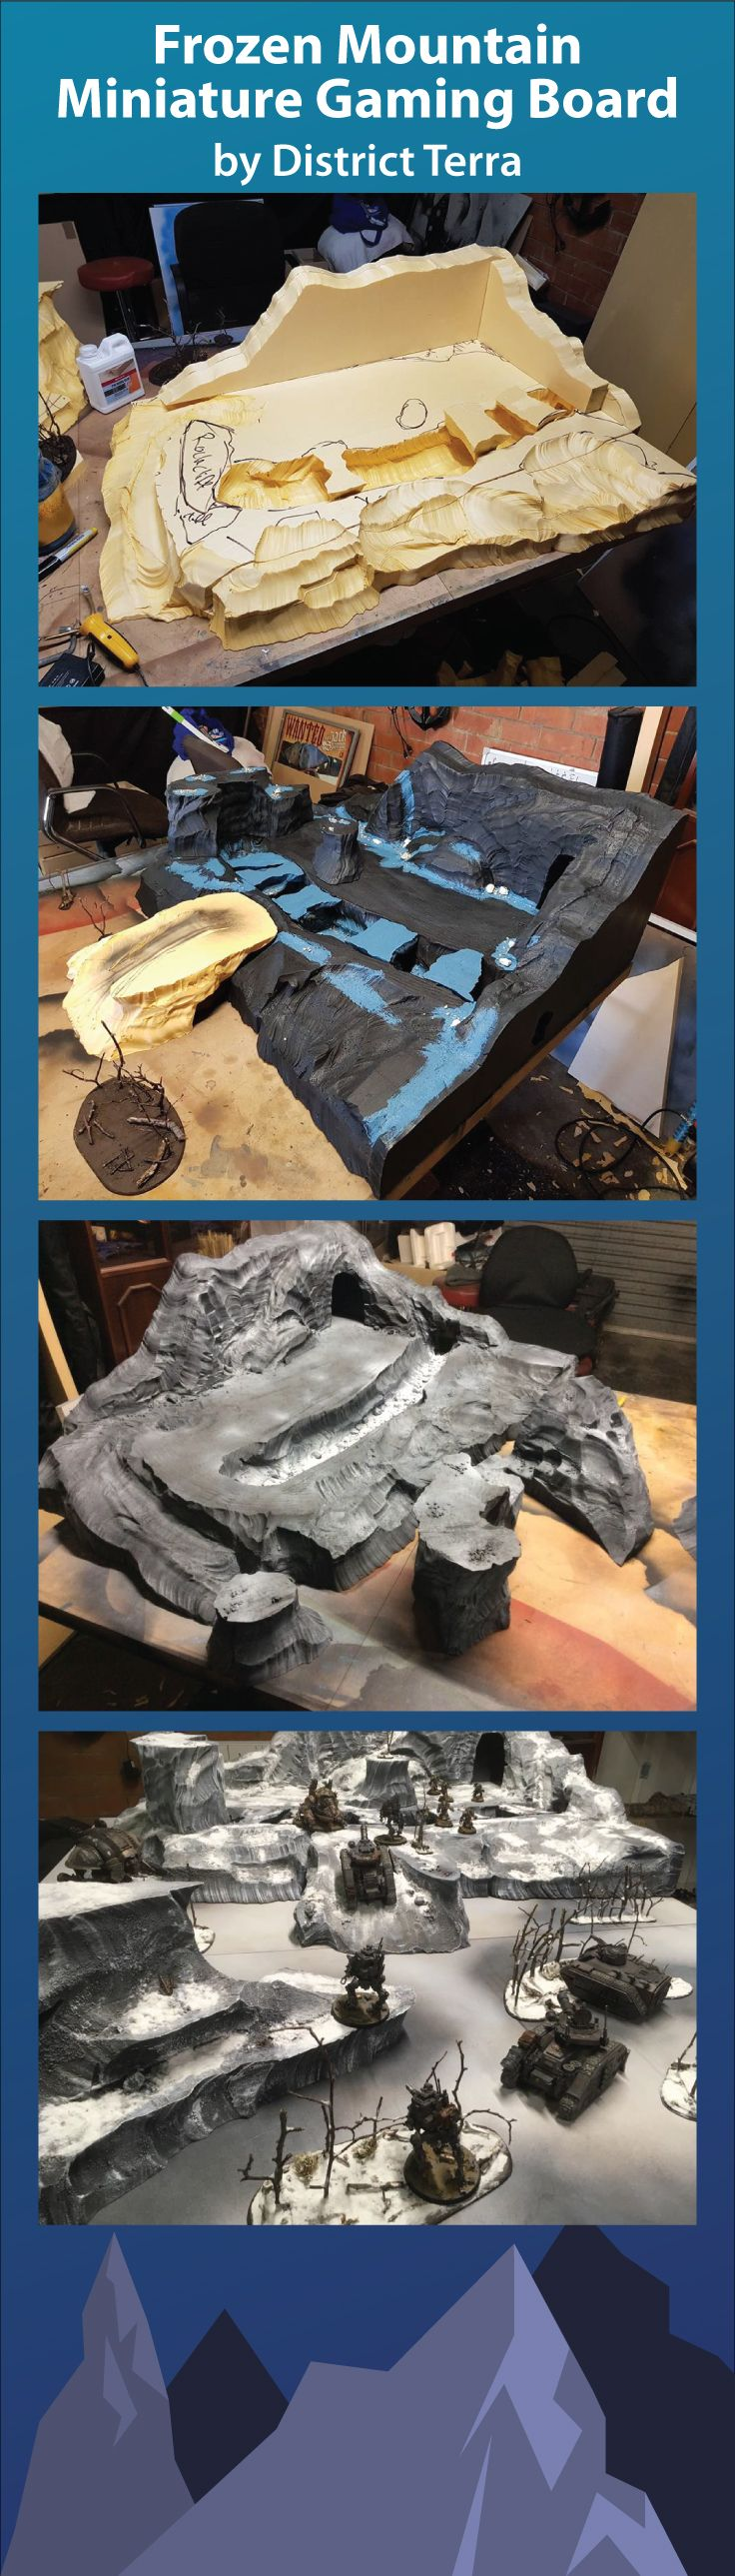 This gaming board is from District : Terra in Australia. It is made of foam, which was sculpted using the #HotWireFoamFactory Freehand Router. He achieved a cool crackle effect to make the river appear frozen - view more photos on the gallery page! #MiniatureGaming #Wargaming